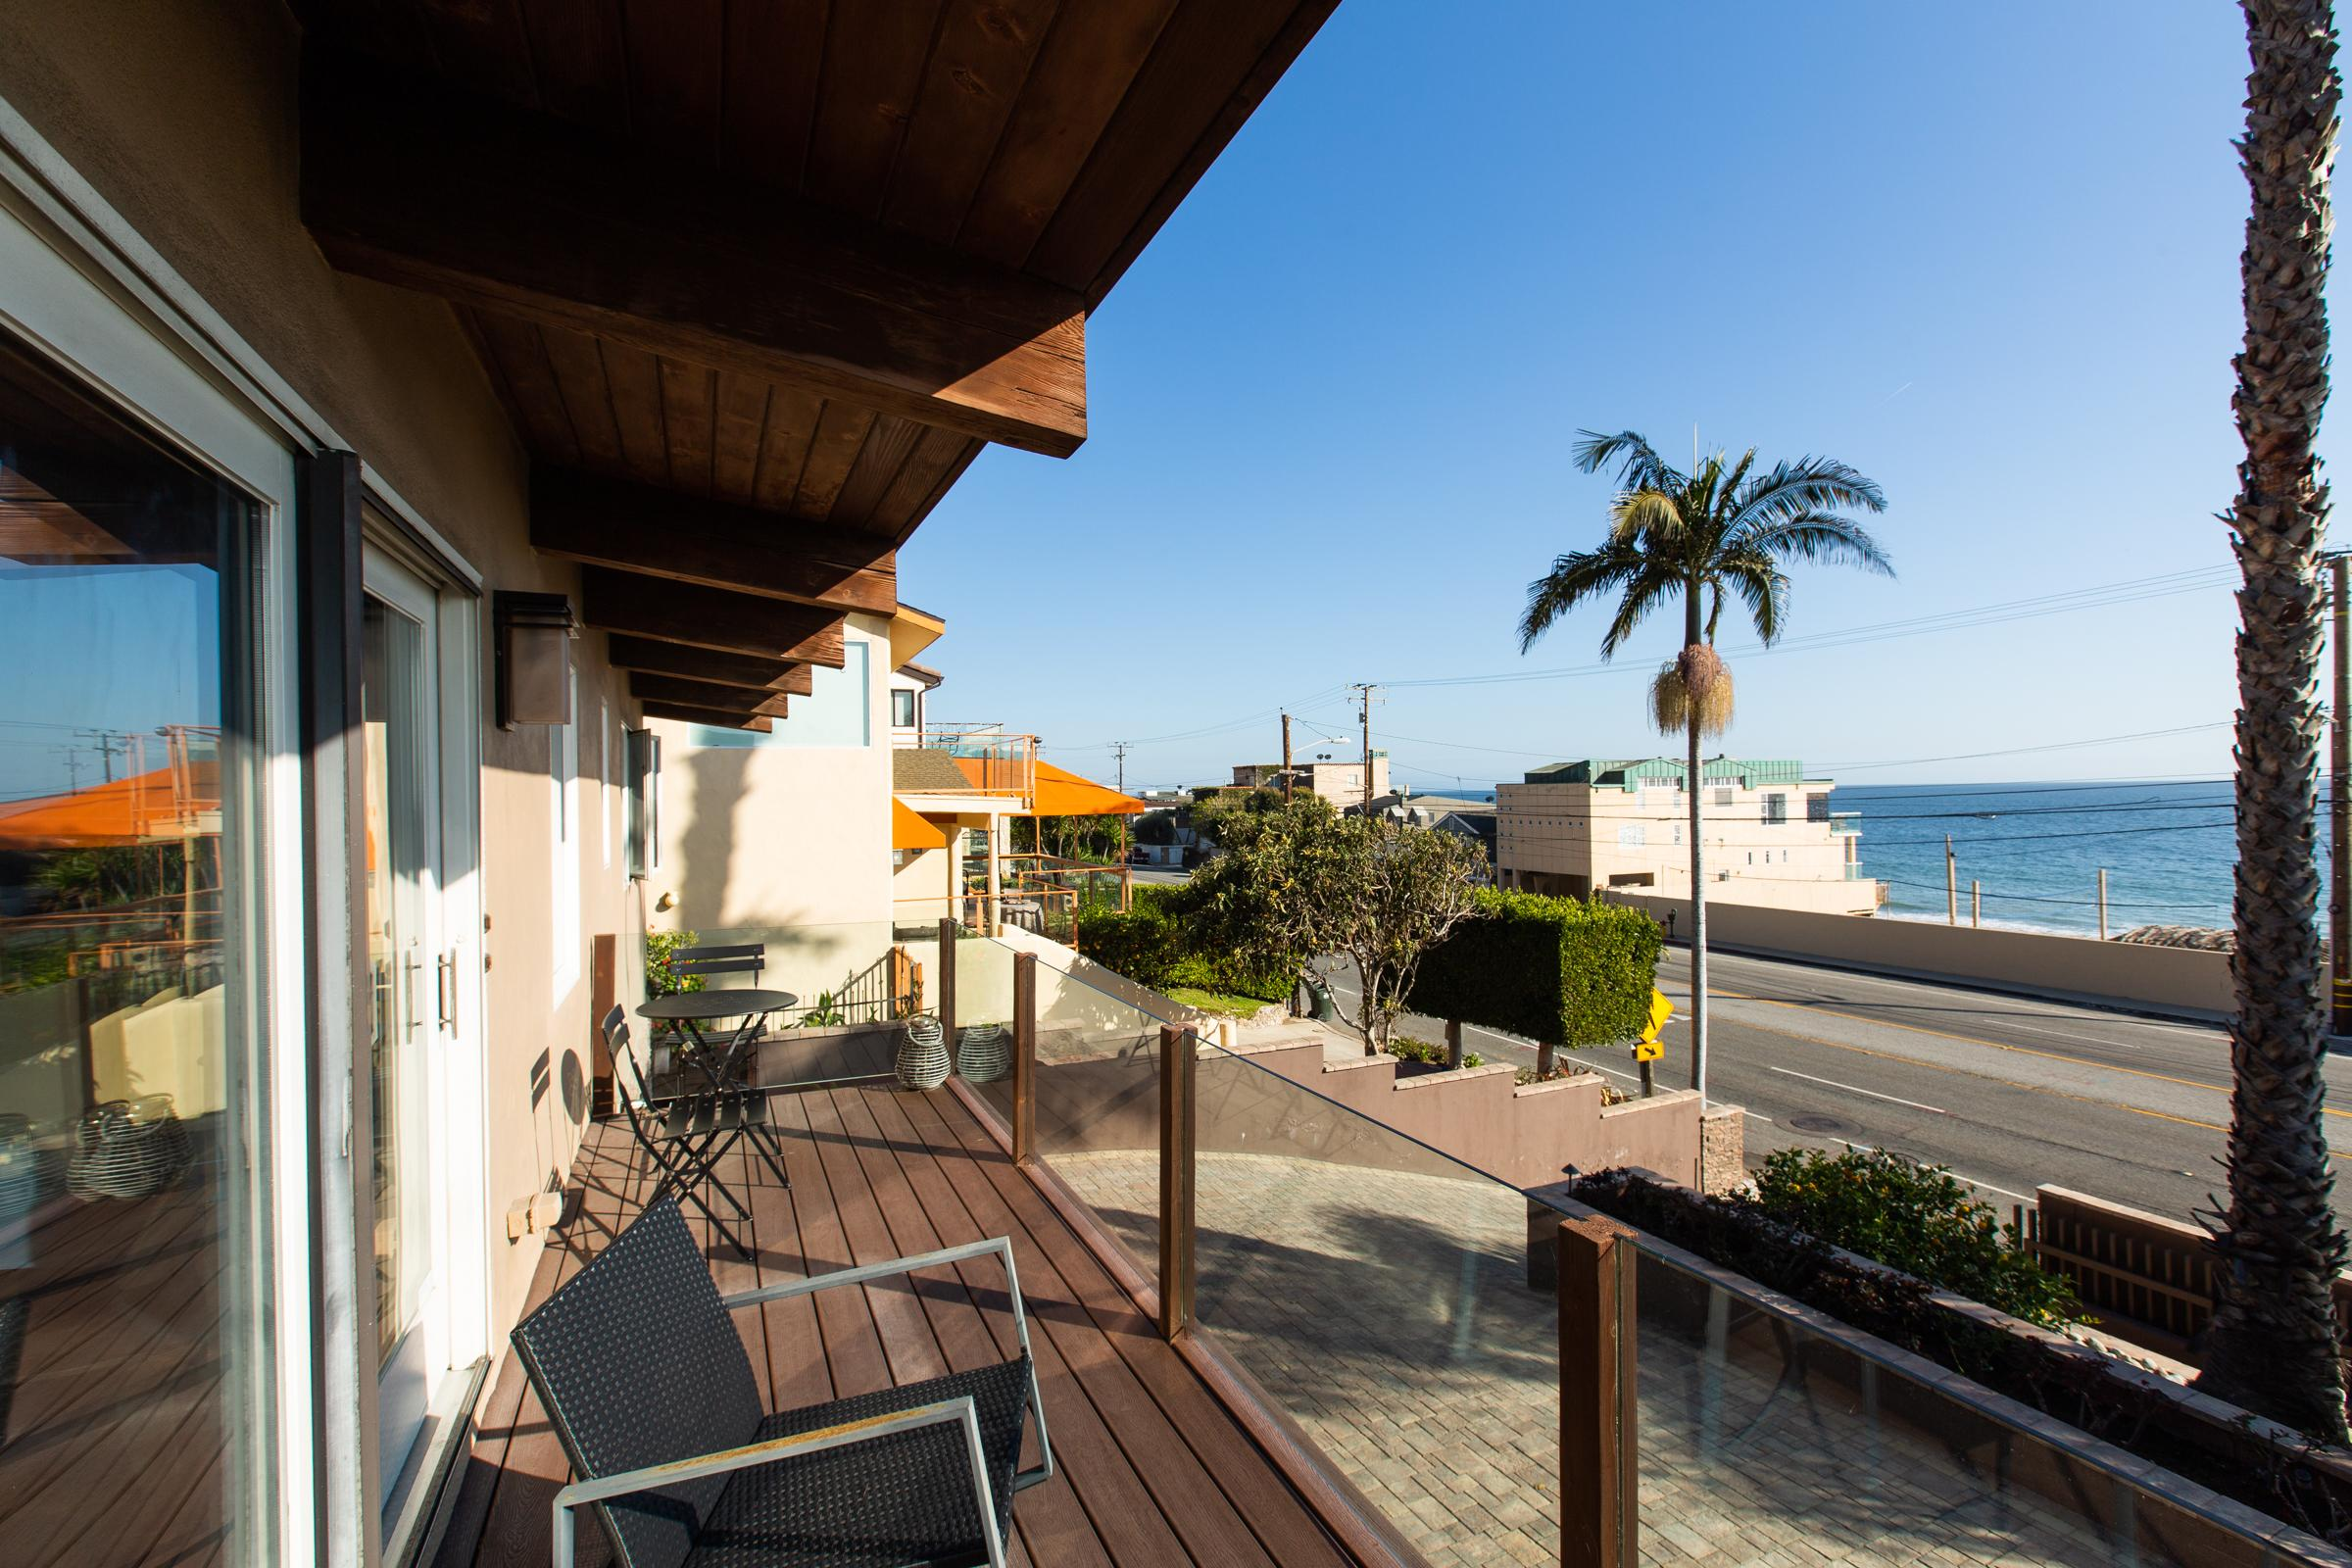 Las Flores | Two Story Hideaway w/ Ocean View | Mins to Malibu Pier